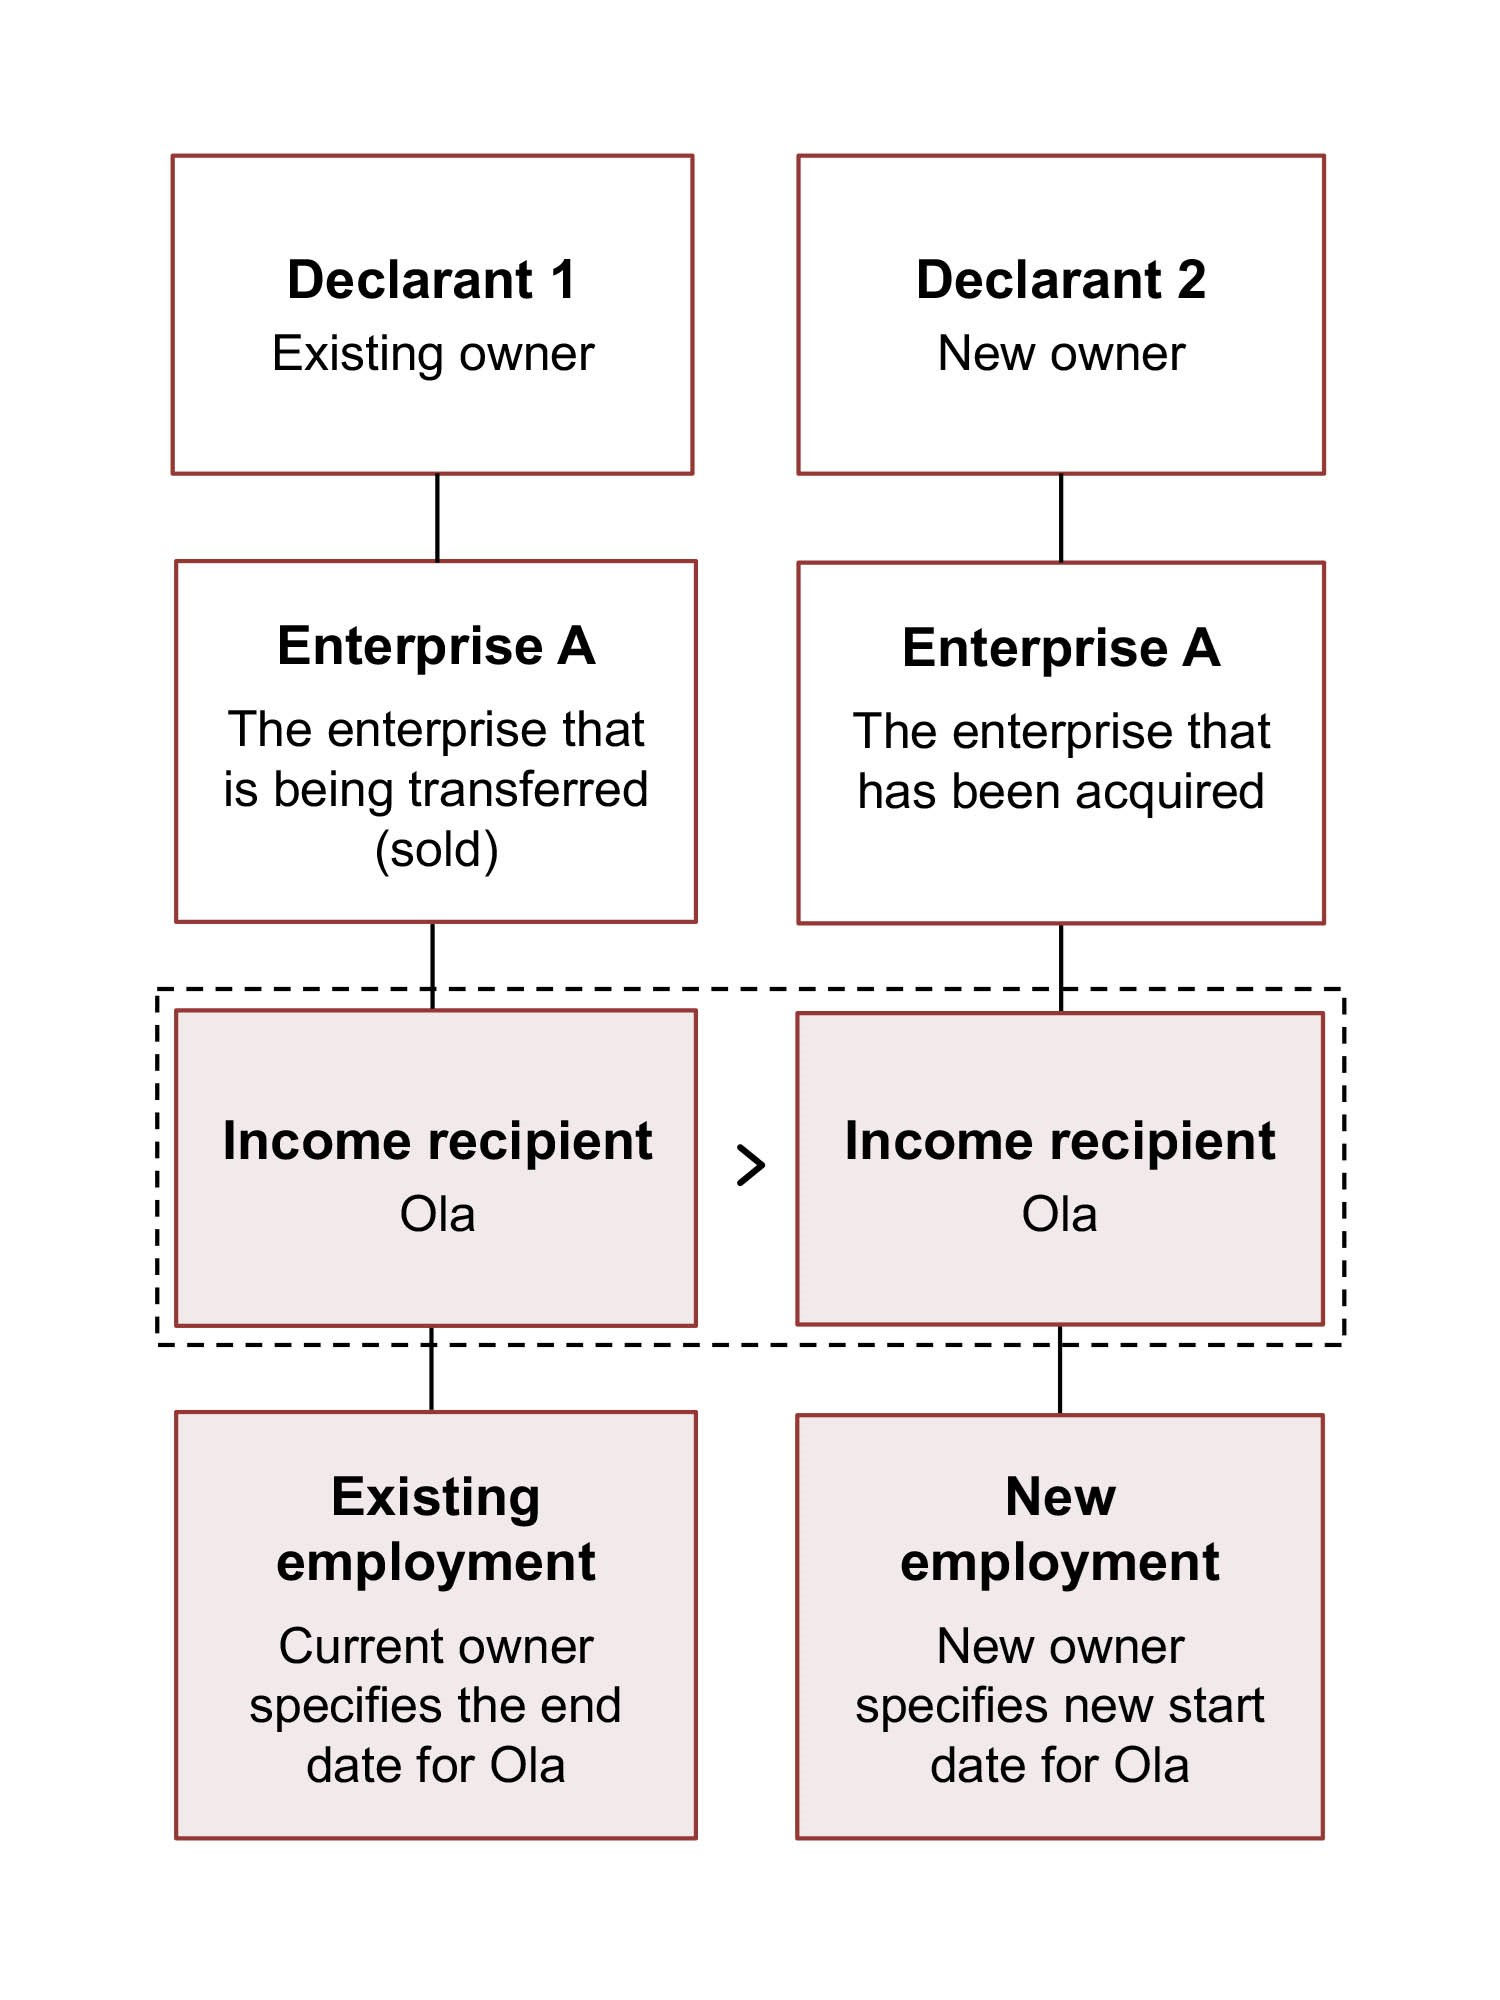 Diagram. The current owner specifies the end date for Ola's existing employment. The new owner specifies Ola's new employment with a new start date. The text in the article explains this in more detail.